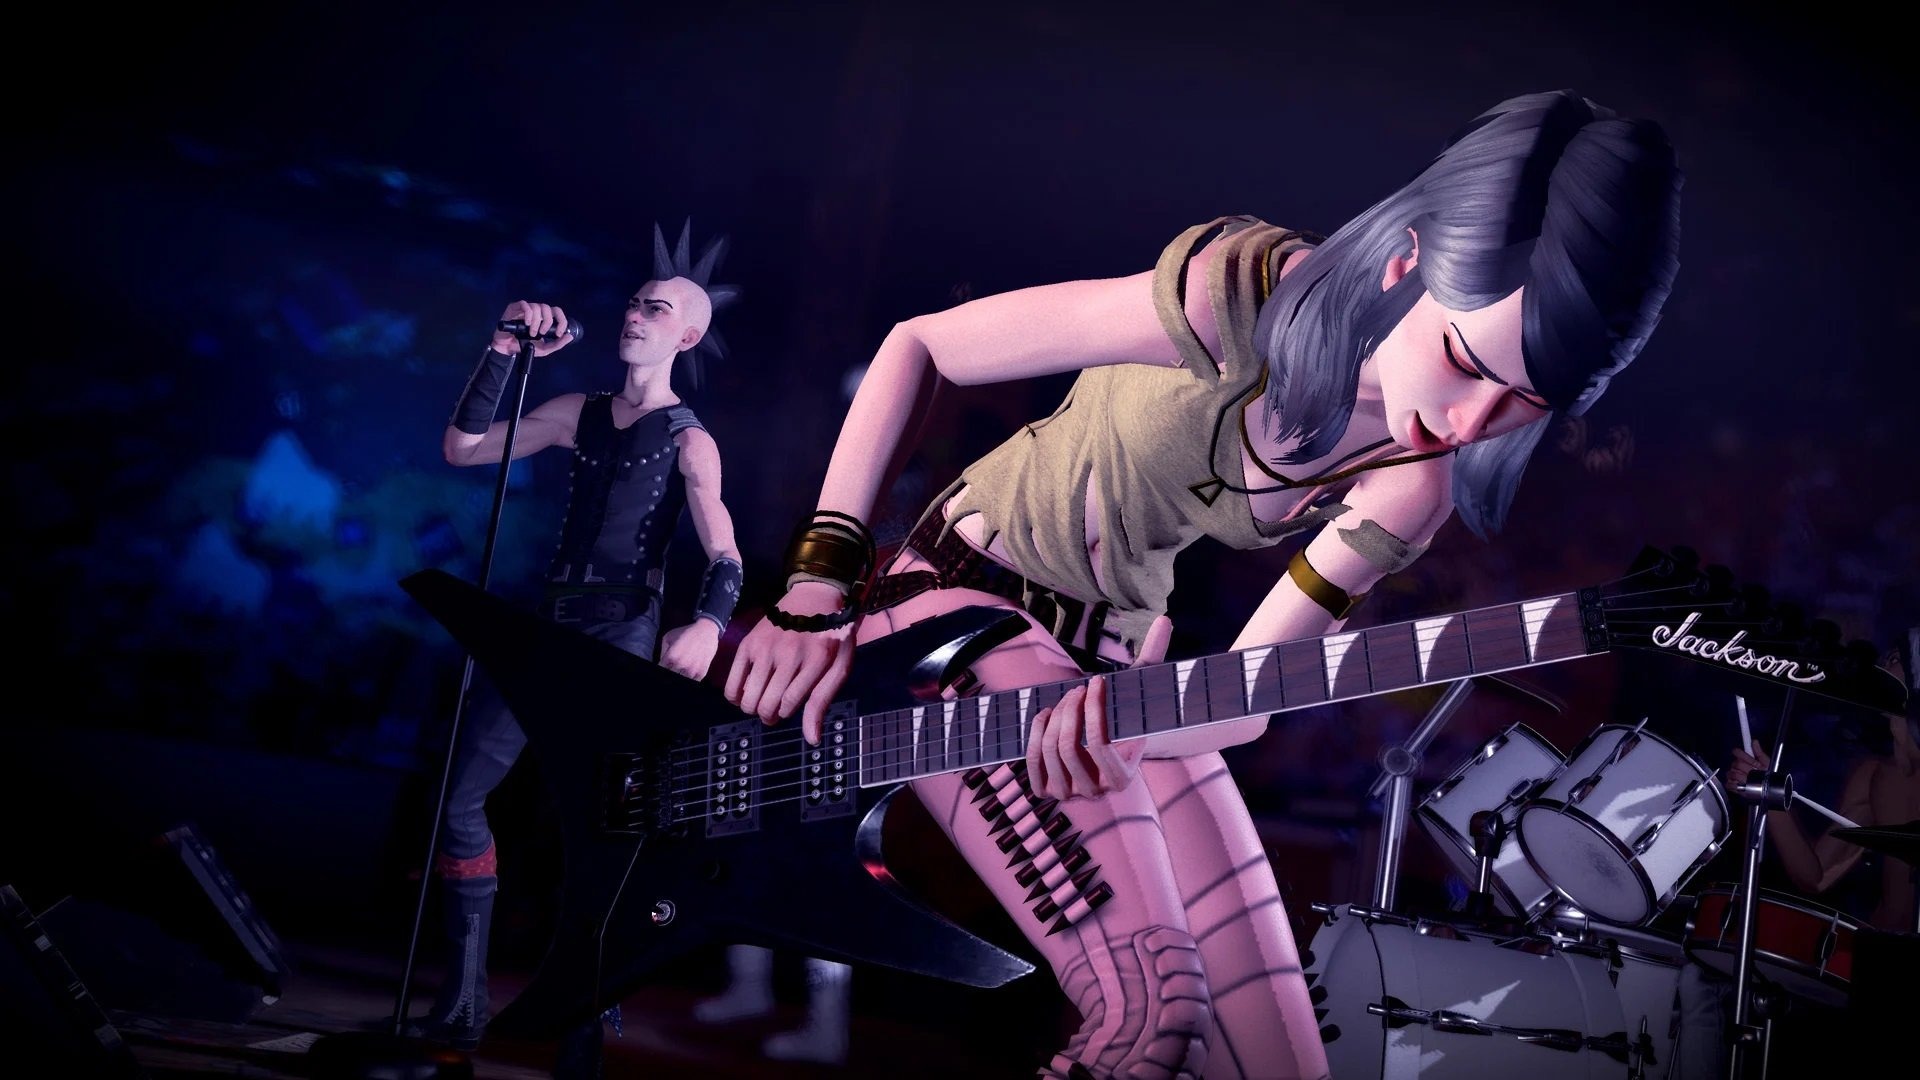 Rock Band 4 is completely compatible with PS5 and Xbox Series X screenshot